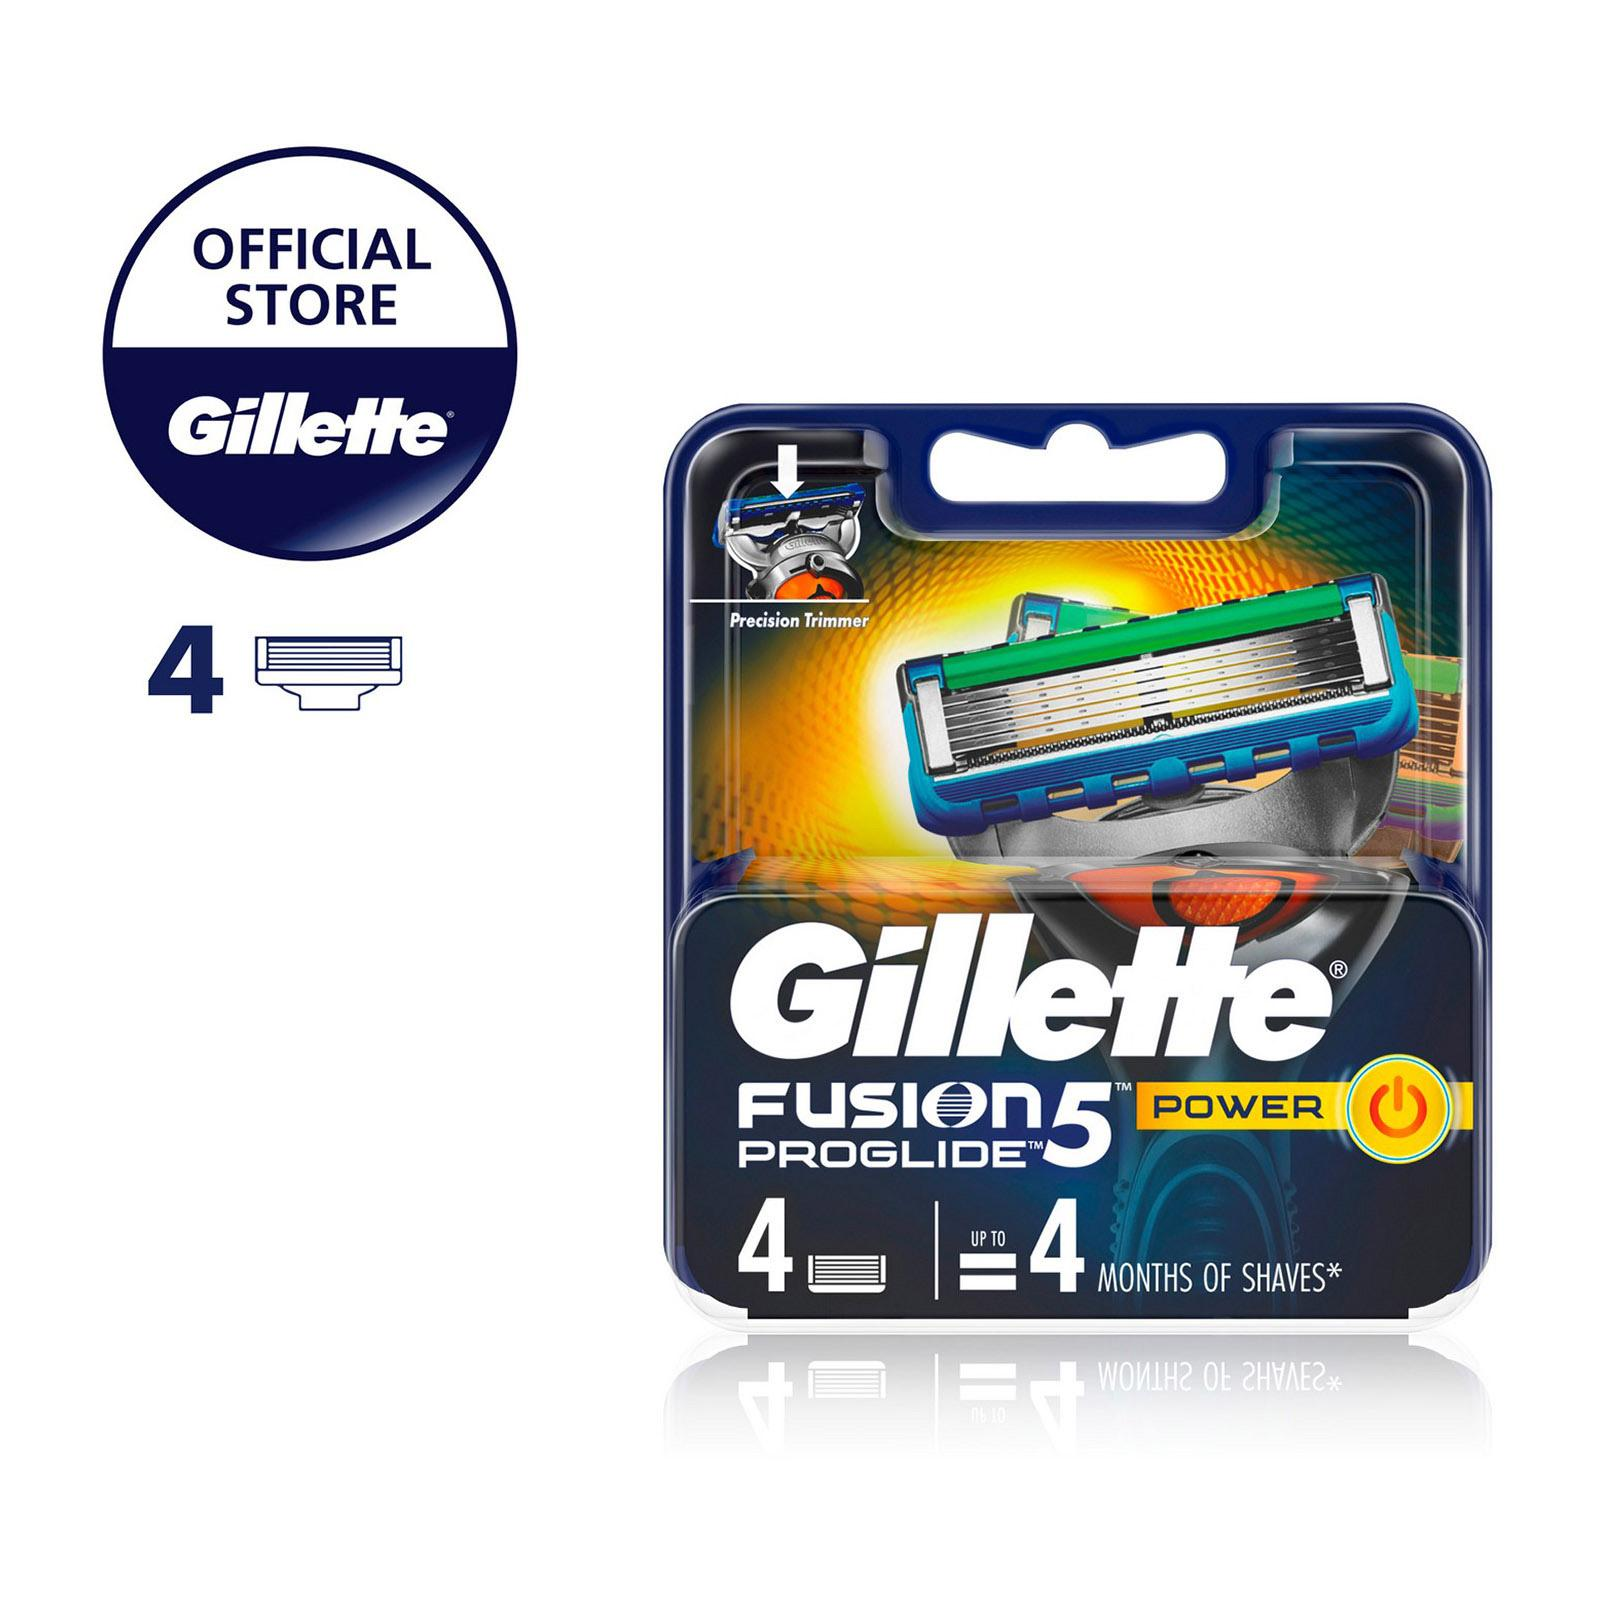 Gillette Fusion5 ProGlide Power Razor Cartridge Refills - 4PCS